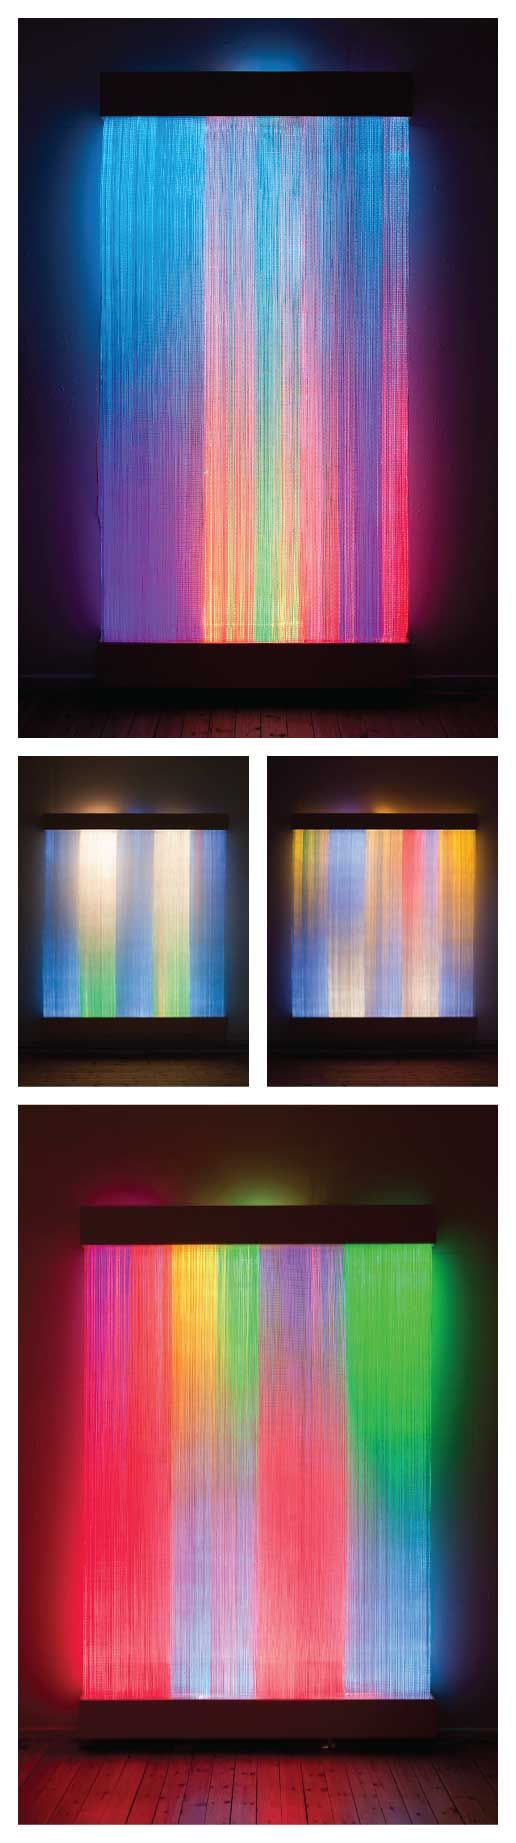 Interacts with viewers in proximity. 'Moving with Lights', Astrid Krogh.